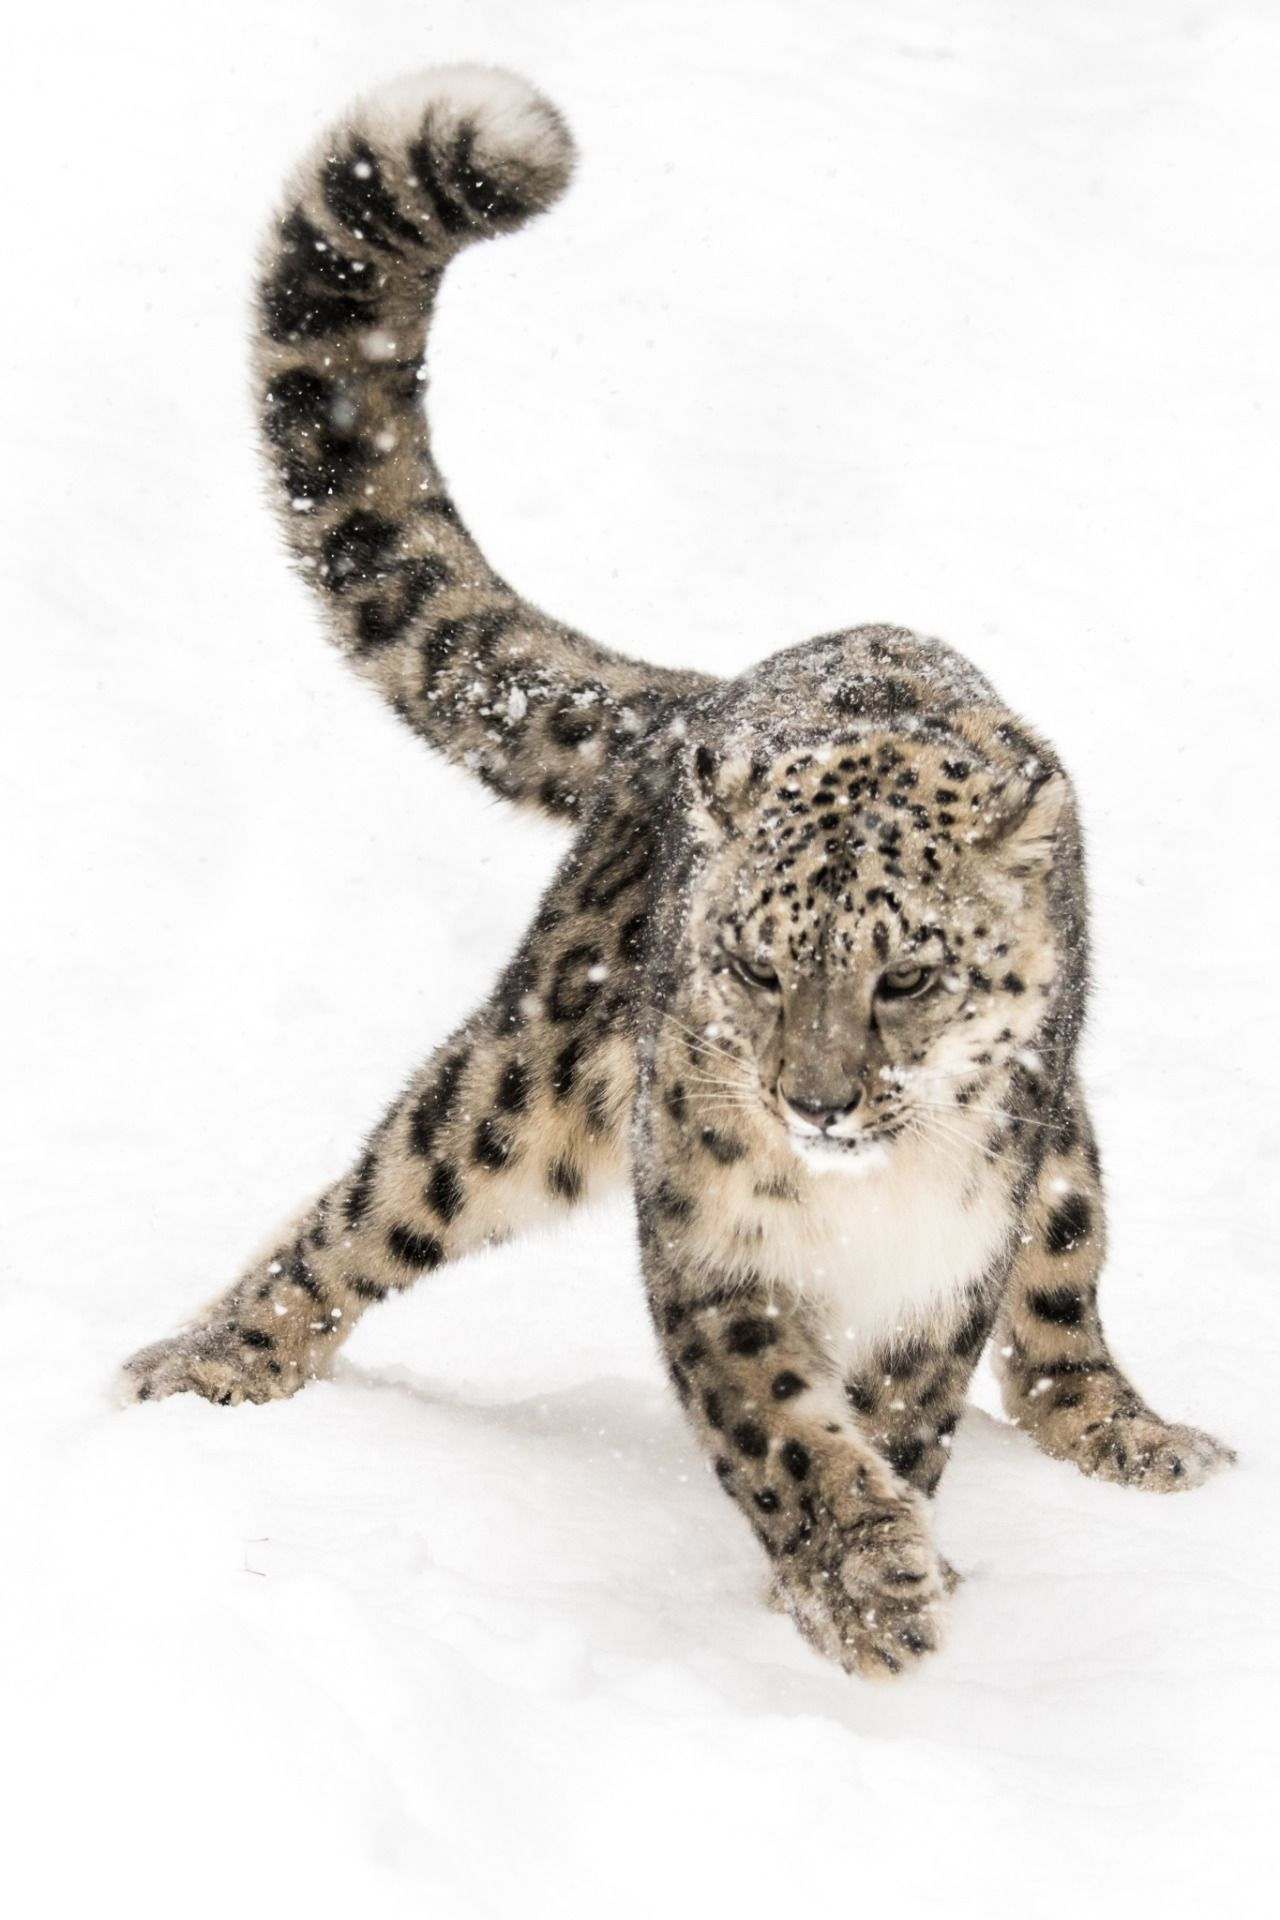 beautiful-wildlife:Snow Leopard on the Prowl by Abeselom Zerit